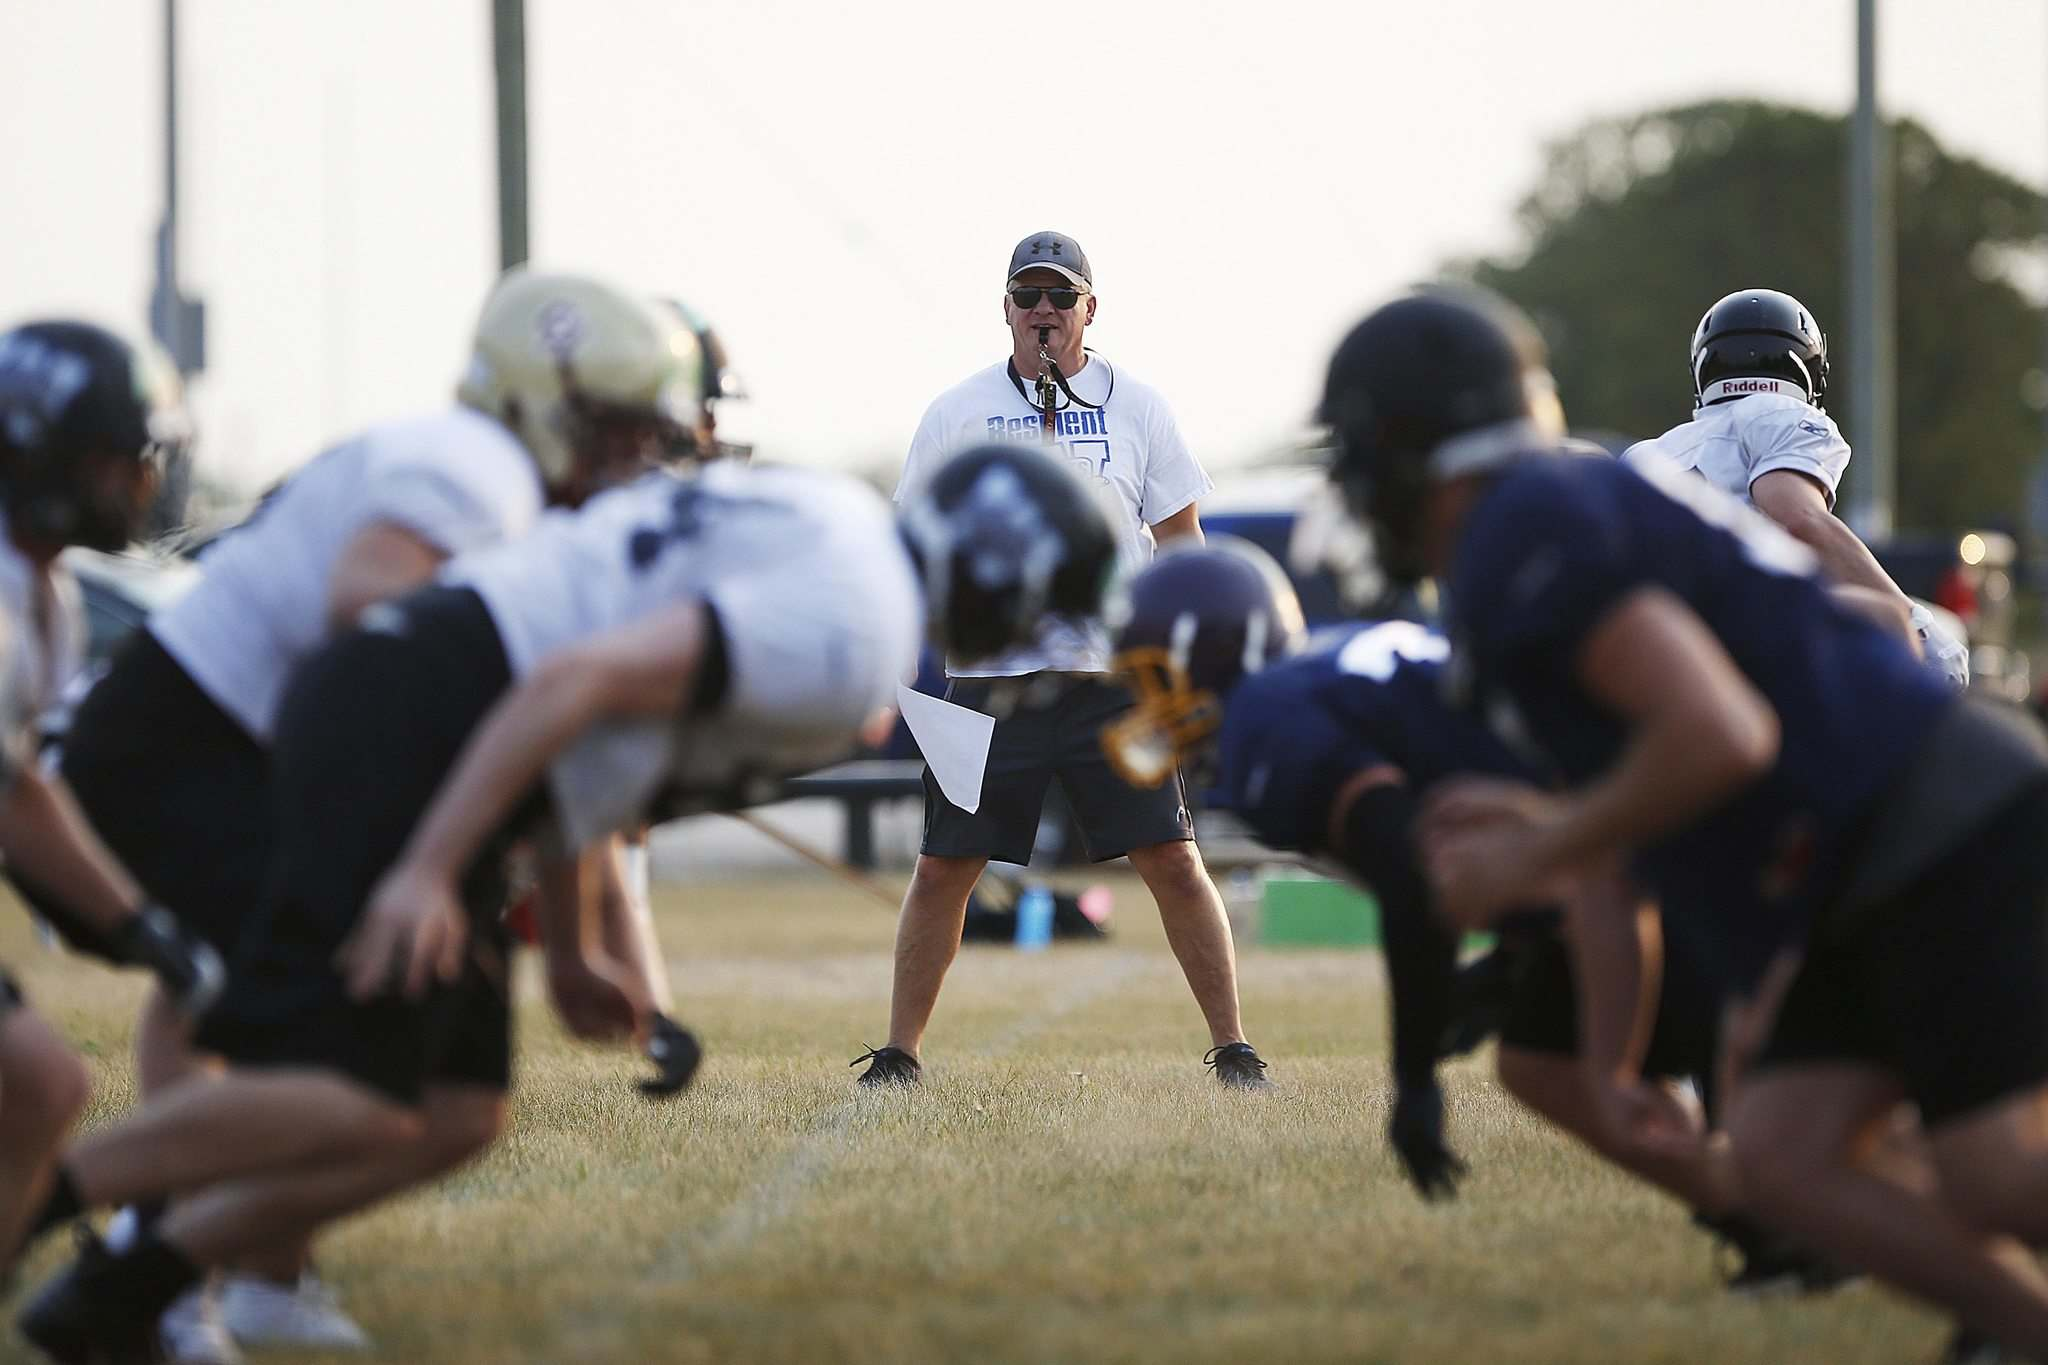 John Woods / Winnipeg Free Press </p></p><p>The Winnipeg Rifles practise while head coach Geordie Wilson looks on Monday. The CJFL team was able to start training camp wrokouts at the end of June. </p>